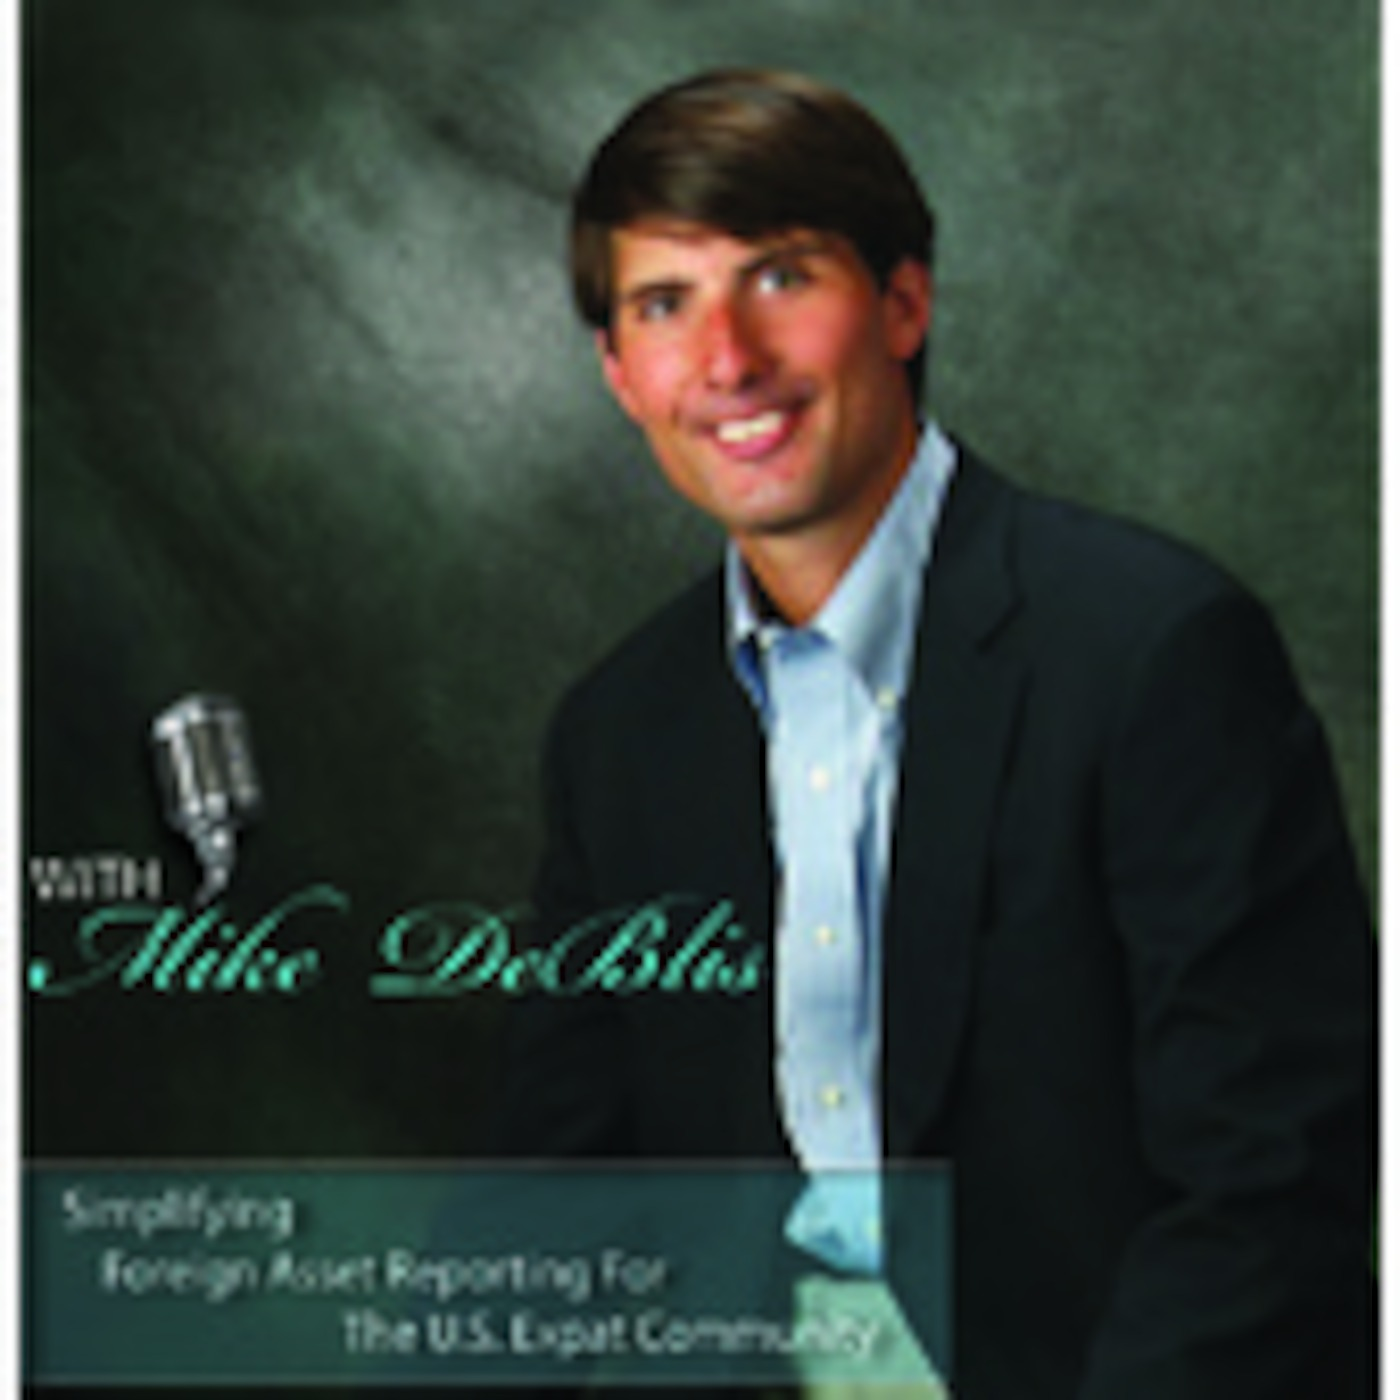 TaxChat with Mike Deblis